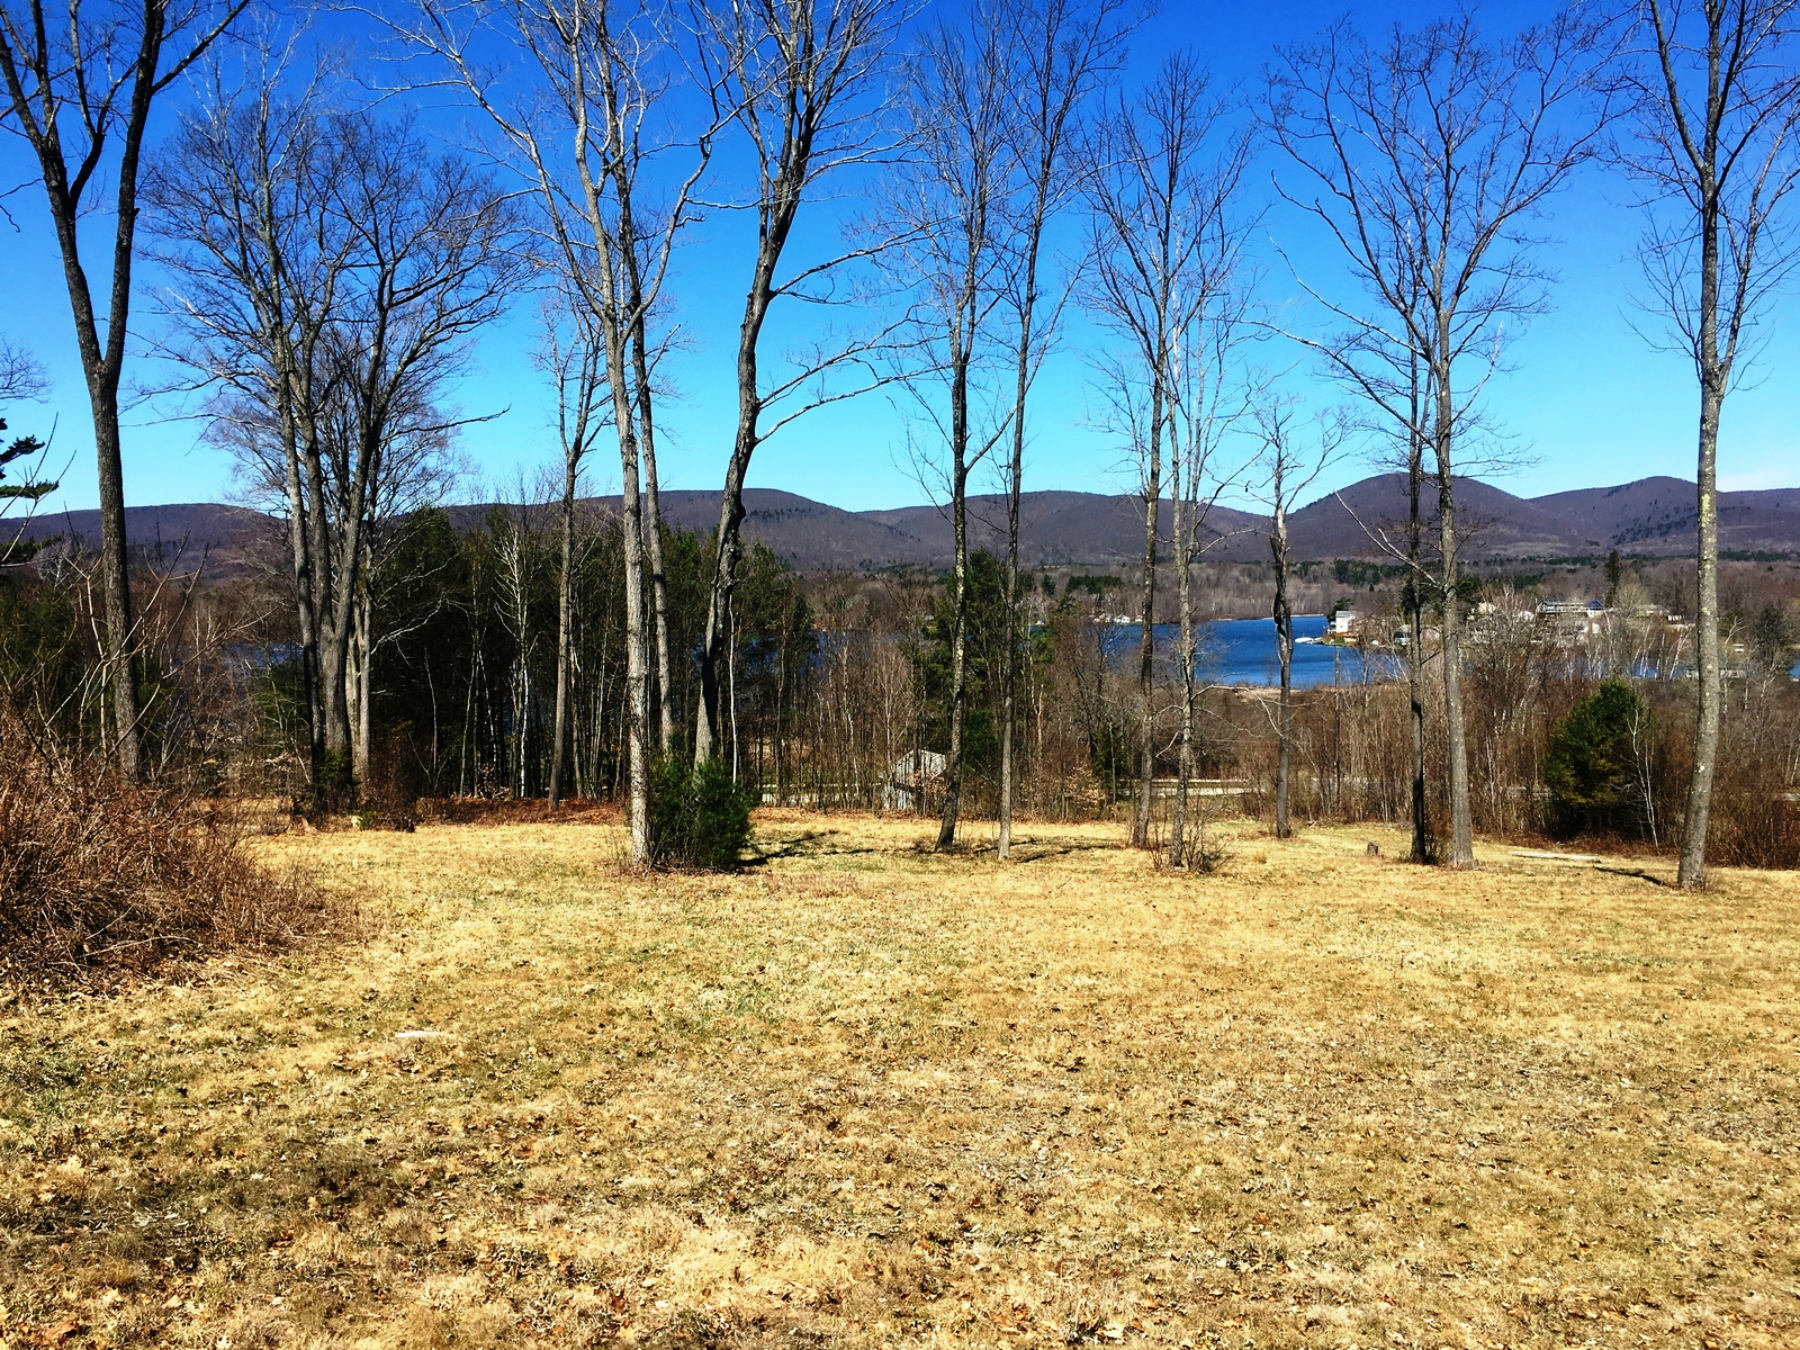 Земля для того Продажа на Lots starting at $89,000 with LakeMountain Views, HikingBiking Trails and Beac Lot 202 Valentine Rd Pittsfield, Массачусетс 01201 Соединенные Штаты